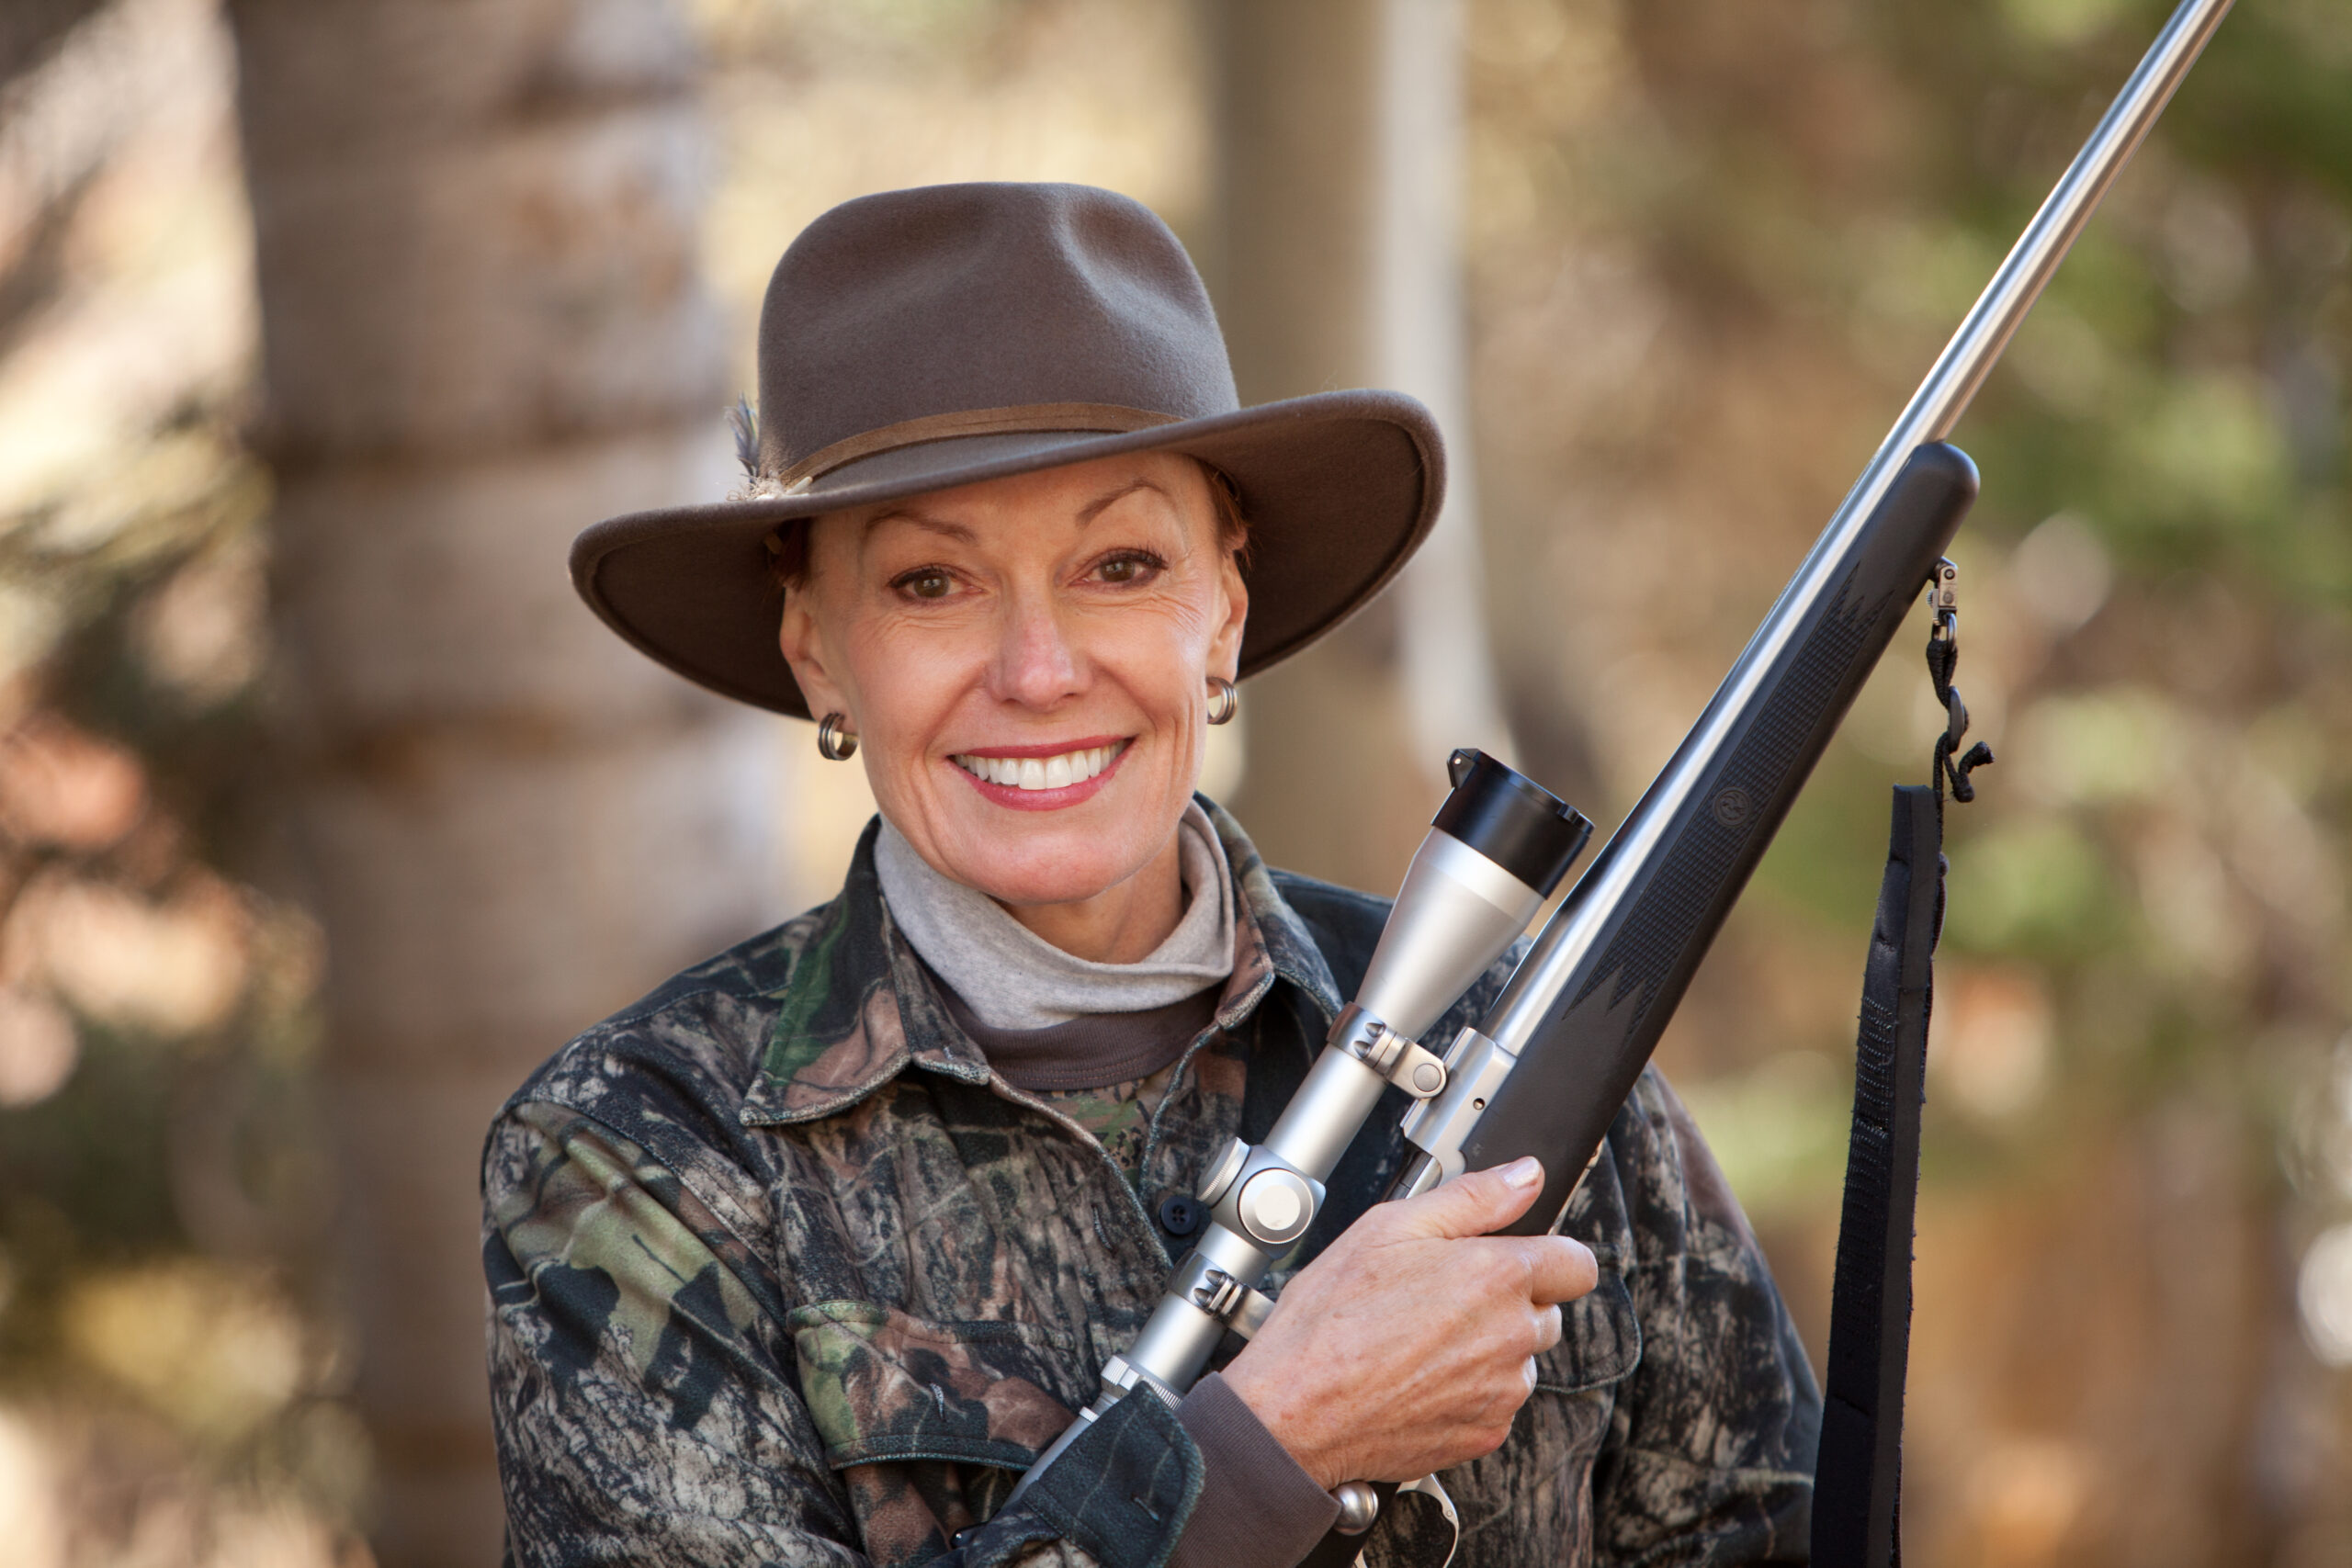 Marsha Petrie Sue is an avid shooter, hunter, and outdoorswoman. She is Chair of the Women's Outdoor Media Association (WOMA)– a 501c3 raising money for Foundation for Women Warriors and other groups.